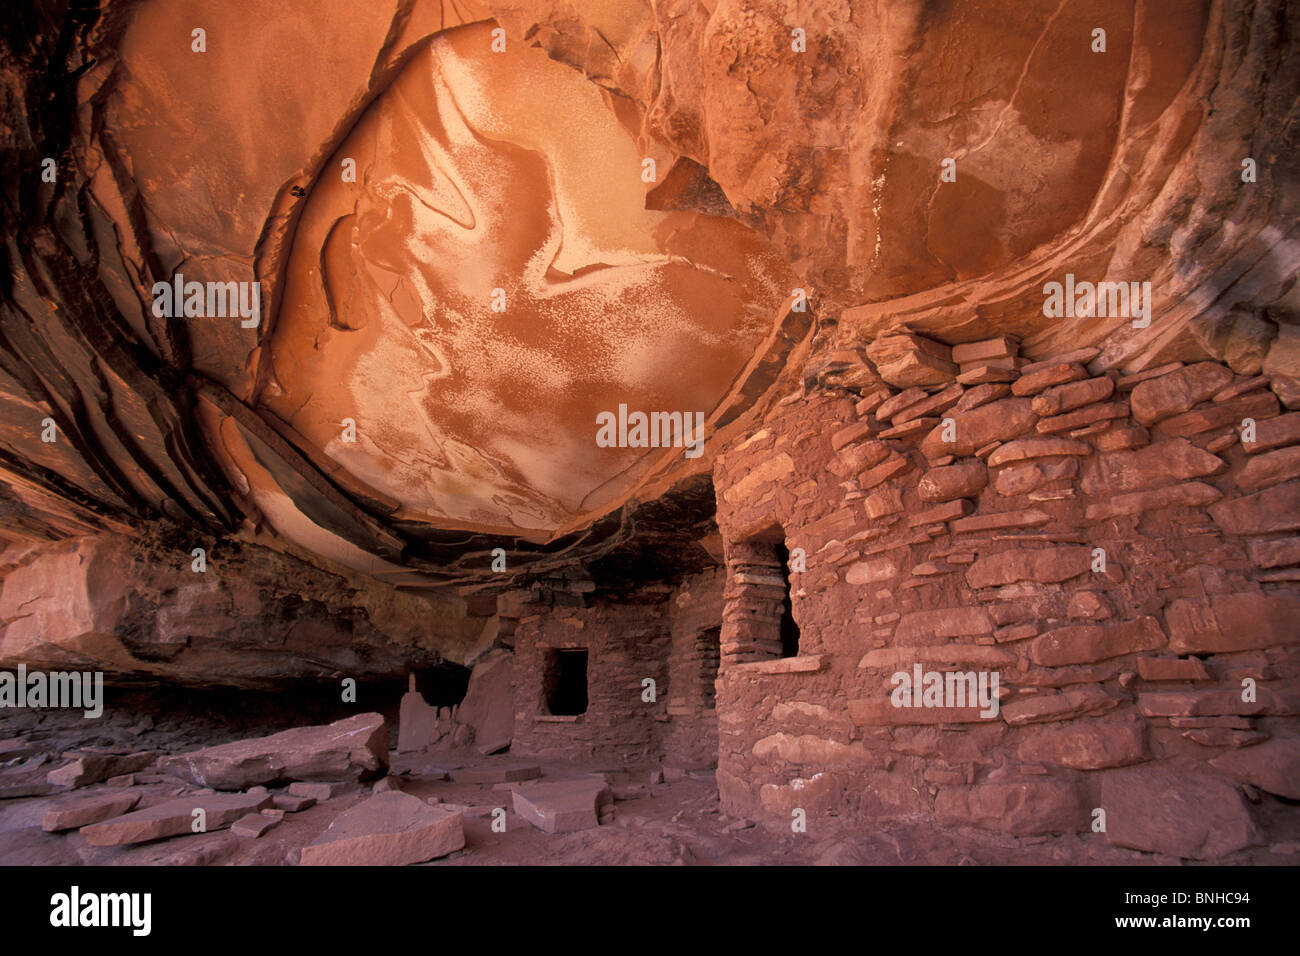 Usa Blanding Utah Anasazi Ruins Road Canyon Colorado Plateau Houses Rocks Rock Native Americans First Nation Indians - Stock Image